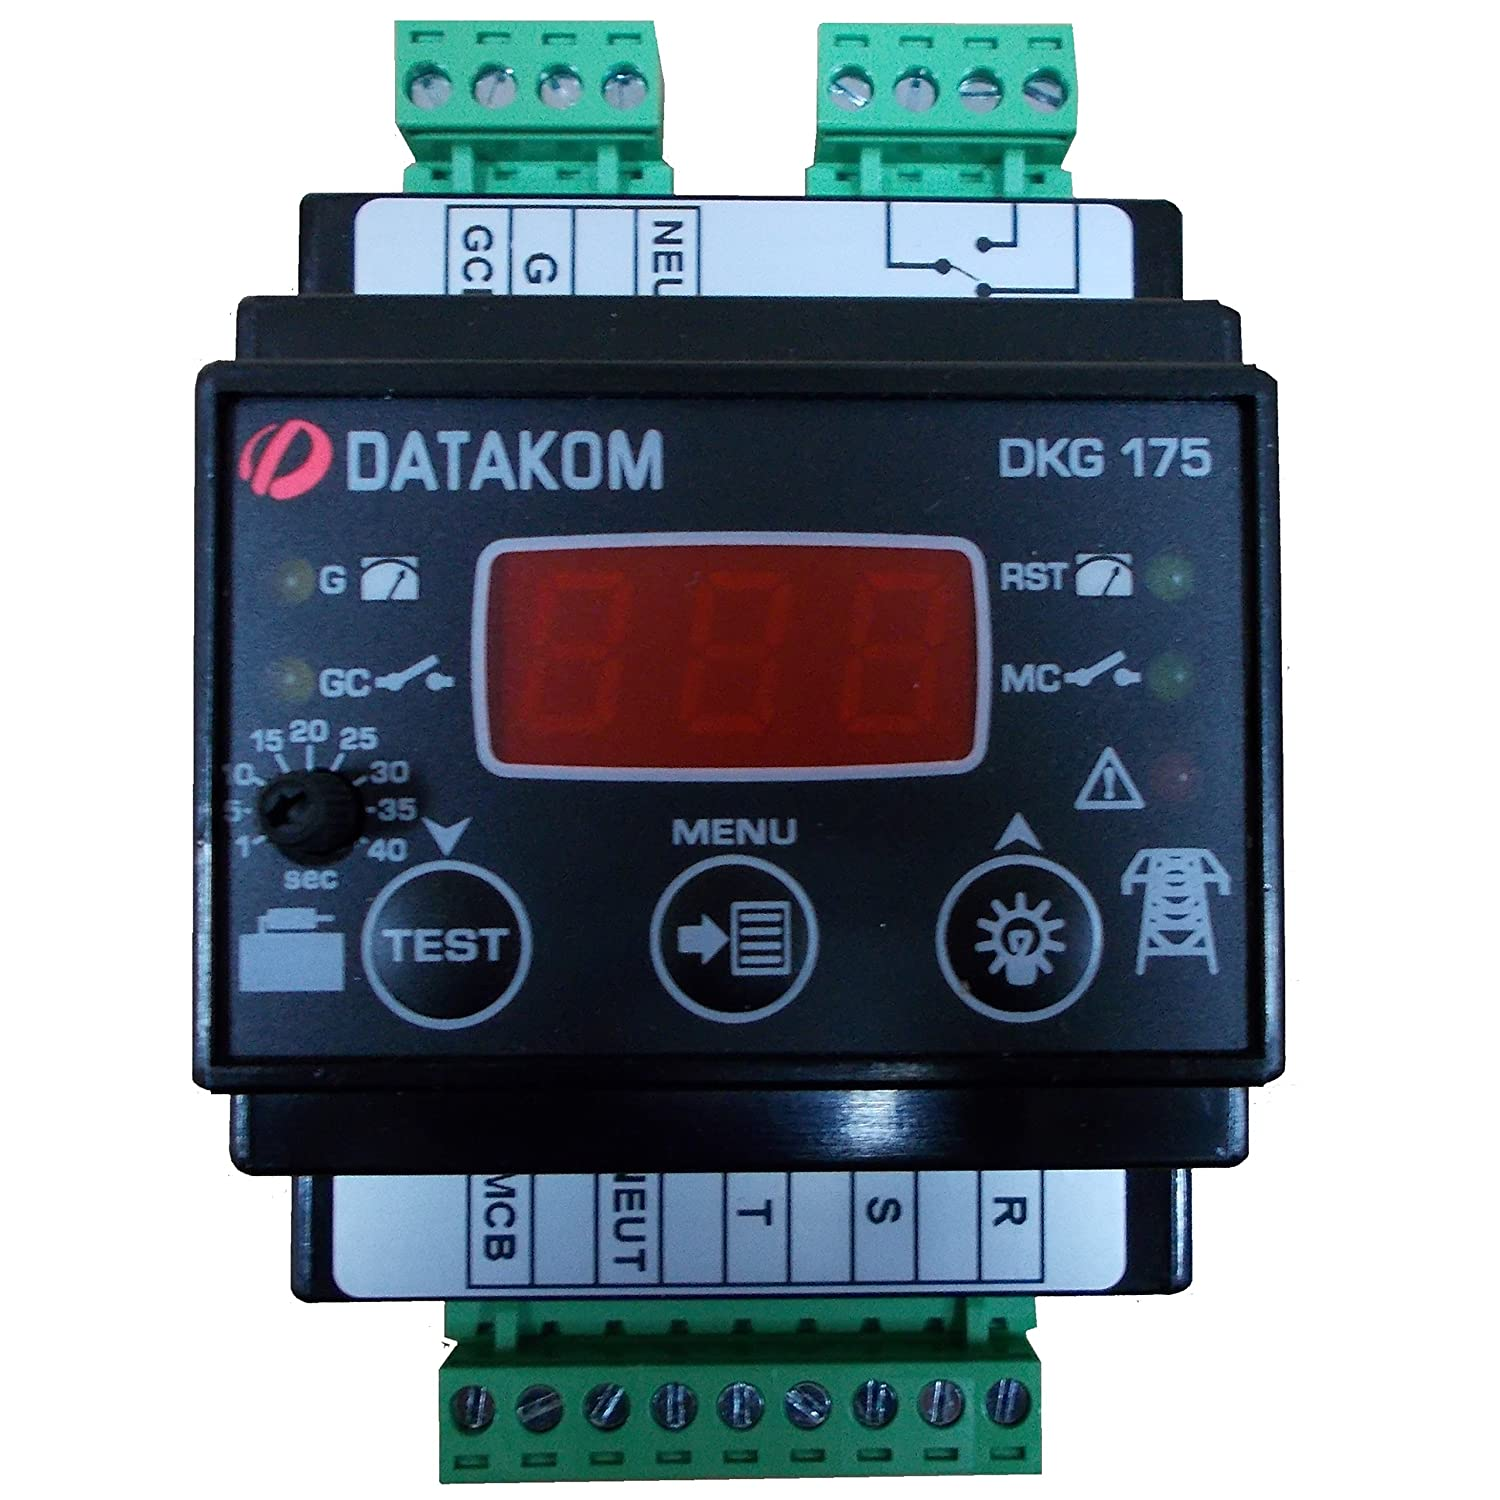 Datakom Dkg 175 Generator Mains Automatic Transfer Switch Controller Details About Ats Build Your Industrial Scientific